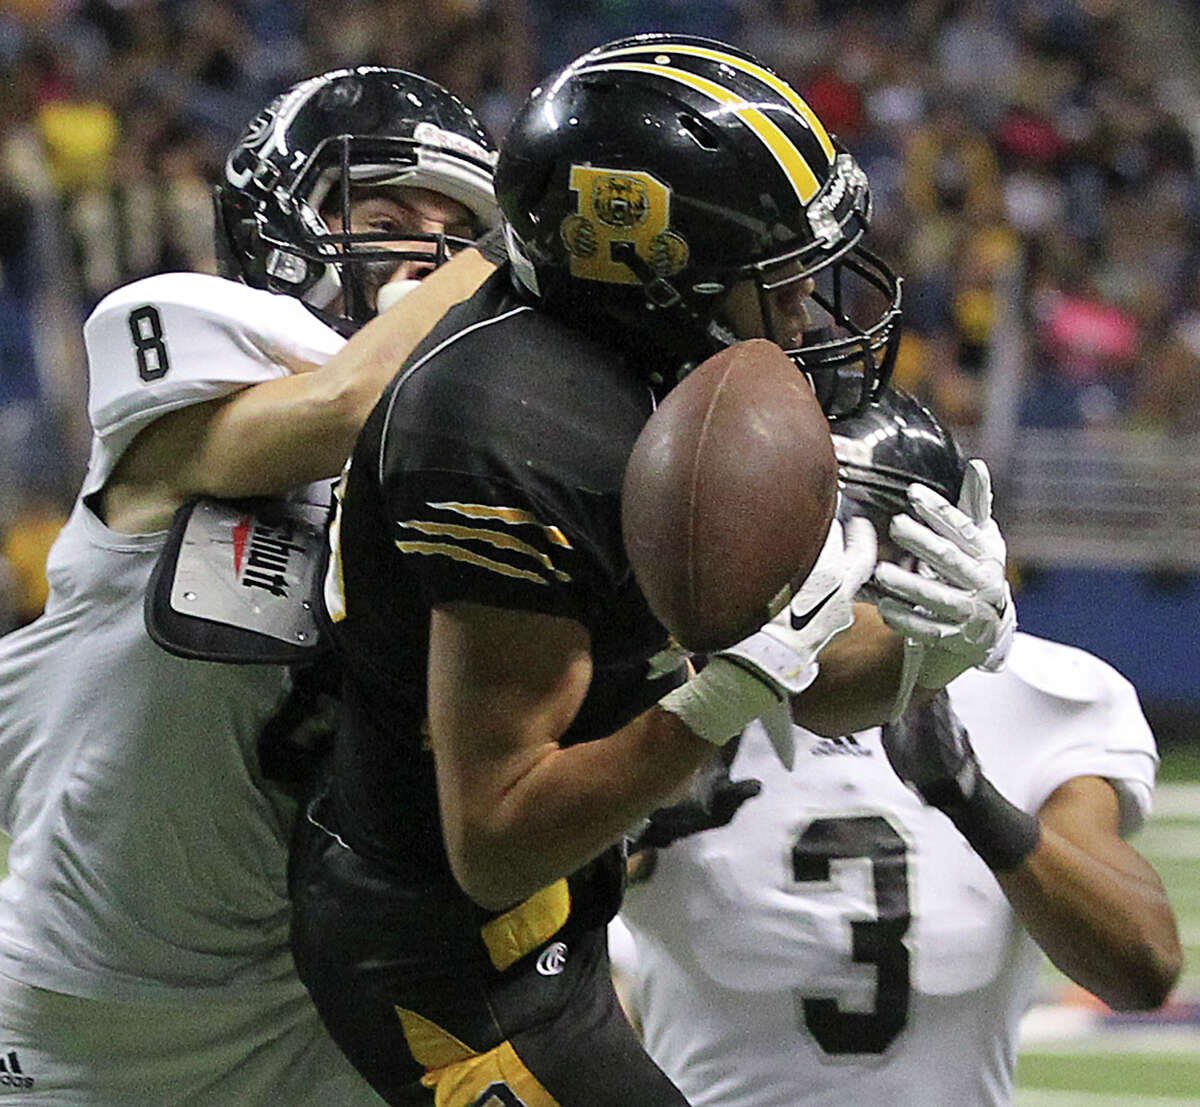 Tightly defended by Knighr defensive backs Mark Frankhouser (8) and Malik Perez, Bear receiver Dayne Thomas can't come up with a catch near the goal as Steele plays Brennan at the Alamodome in second round 6A high school Division I I playoff action on November 22, 2014.